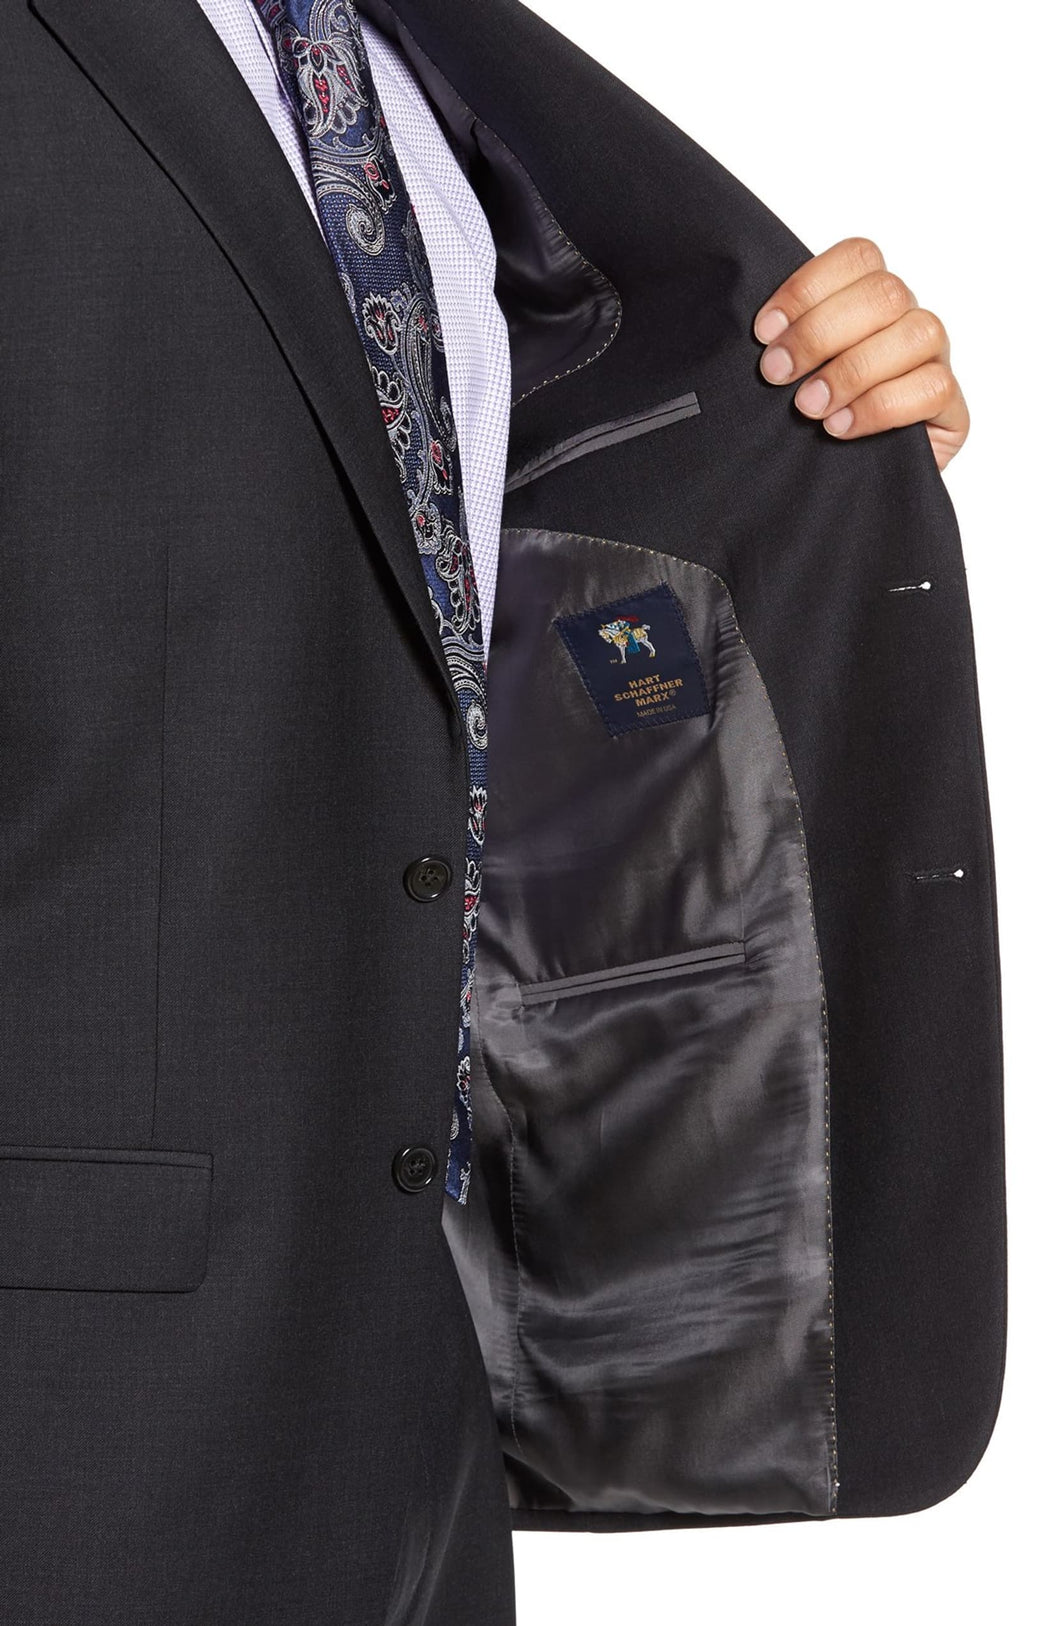 Hart Schaffner Marx Full Fit Charcoal Suit